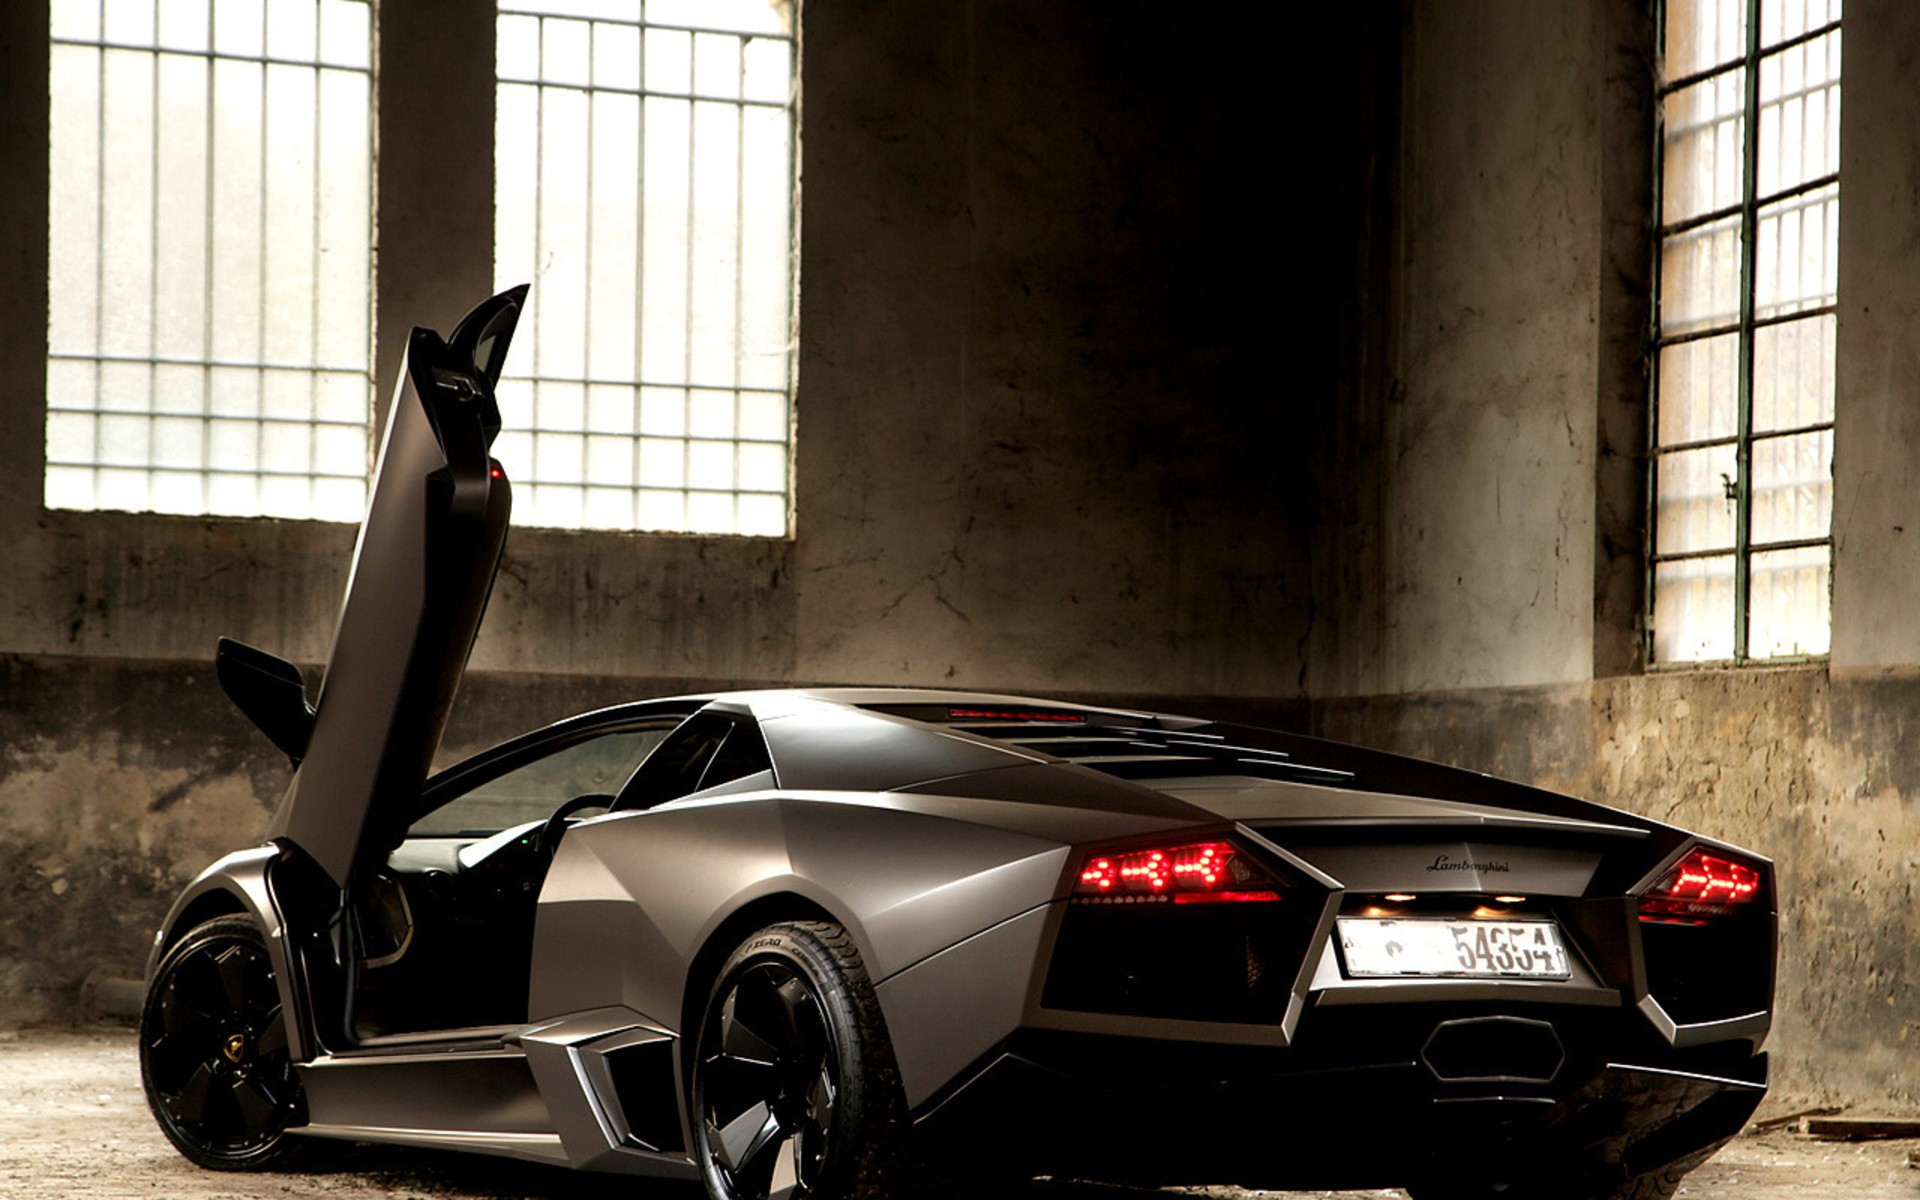 This is done by a process of burning gasoline, which produces expansion of gas and exhaust of waste gases. Moving Car Wallpapers Land Vehicle Vehicle Car Supercar Automotive Design Lamborghini Reventon Sports Car Lamborghini Performance Car Lamborghini Murcielago 2203715 Wallpaperkiss